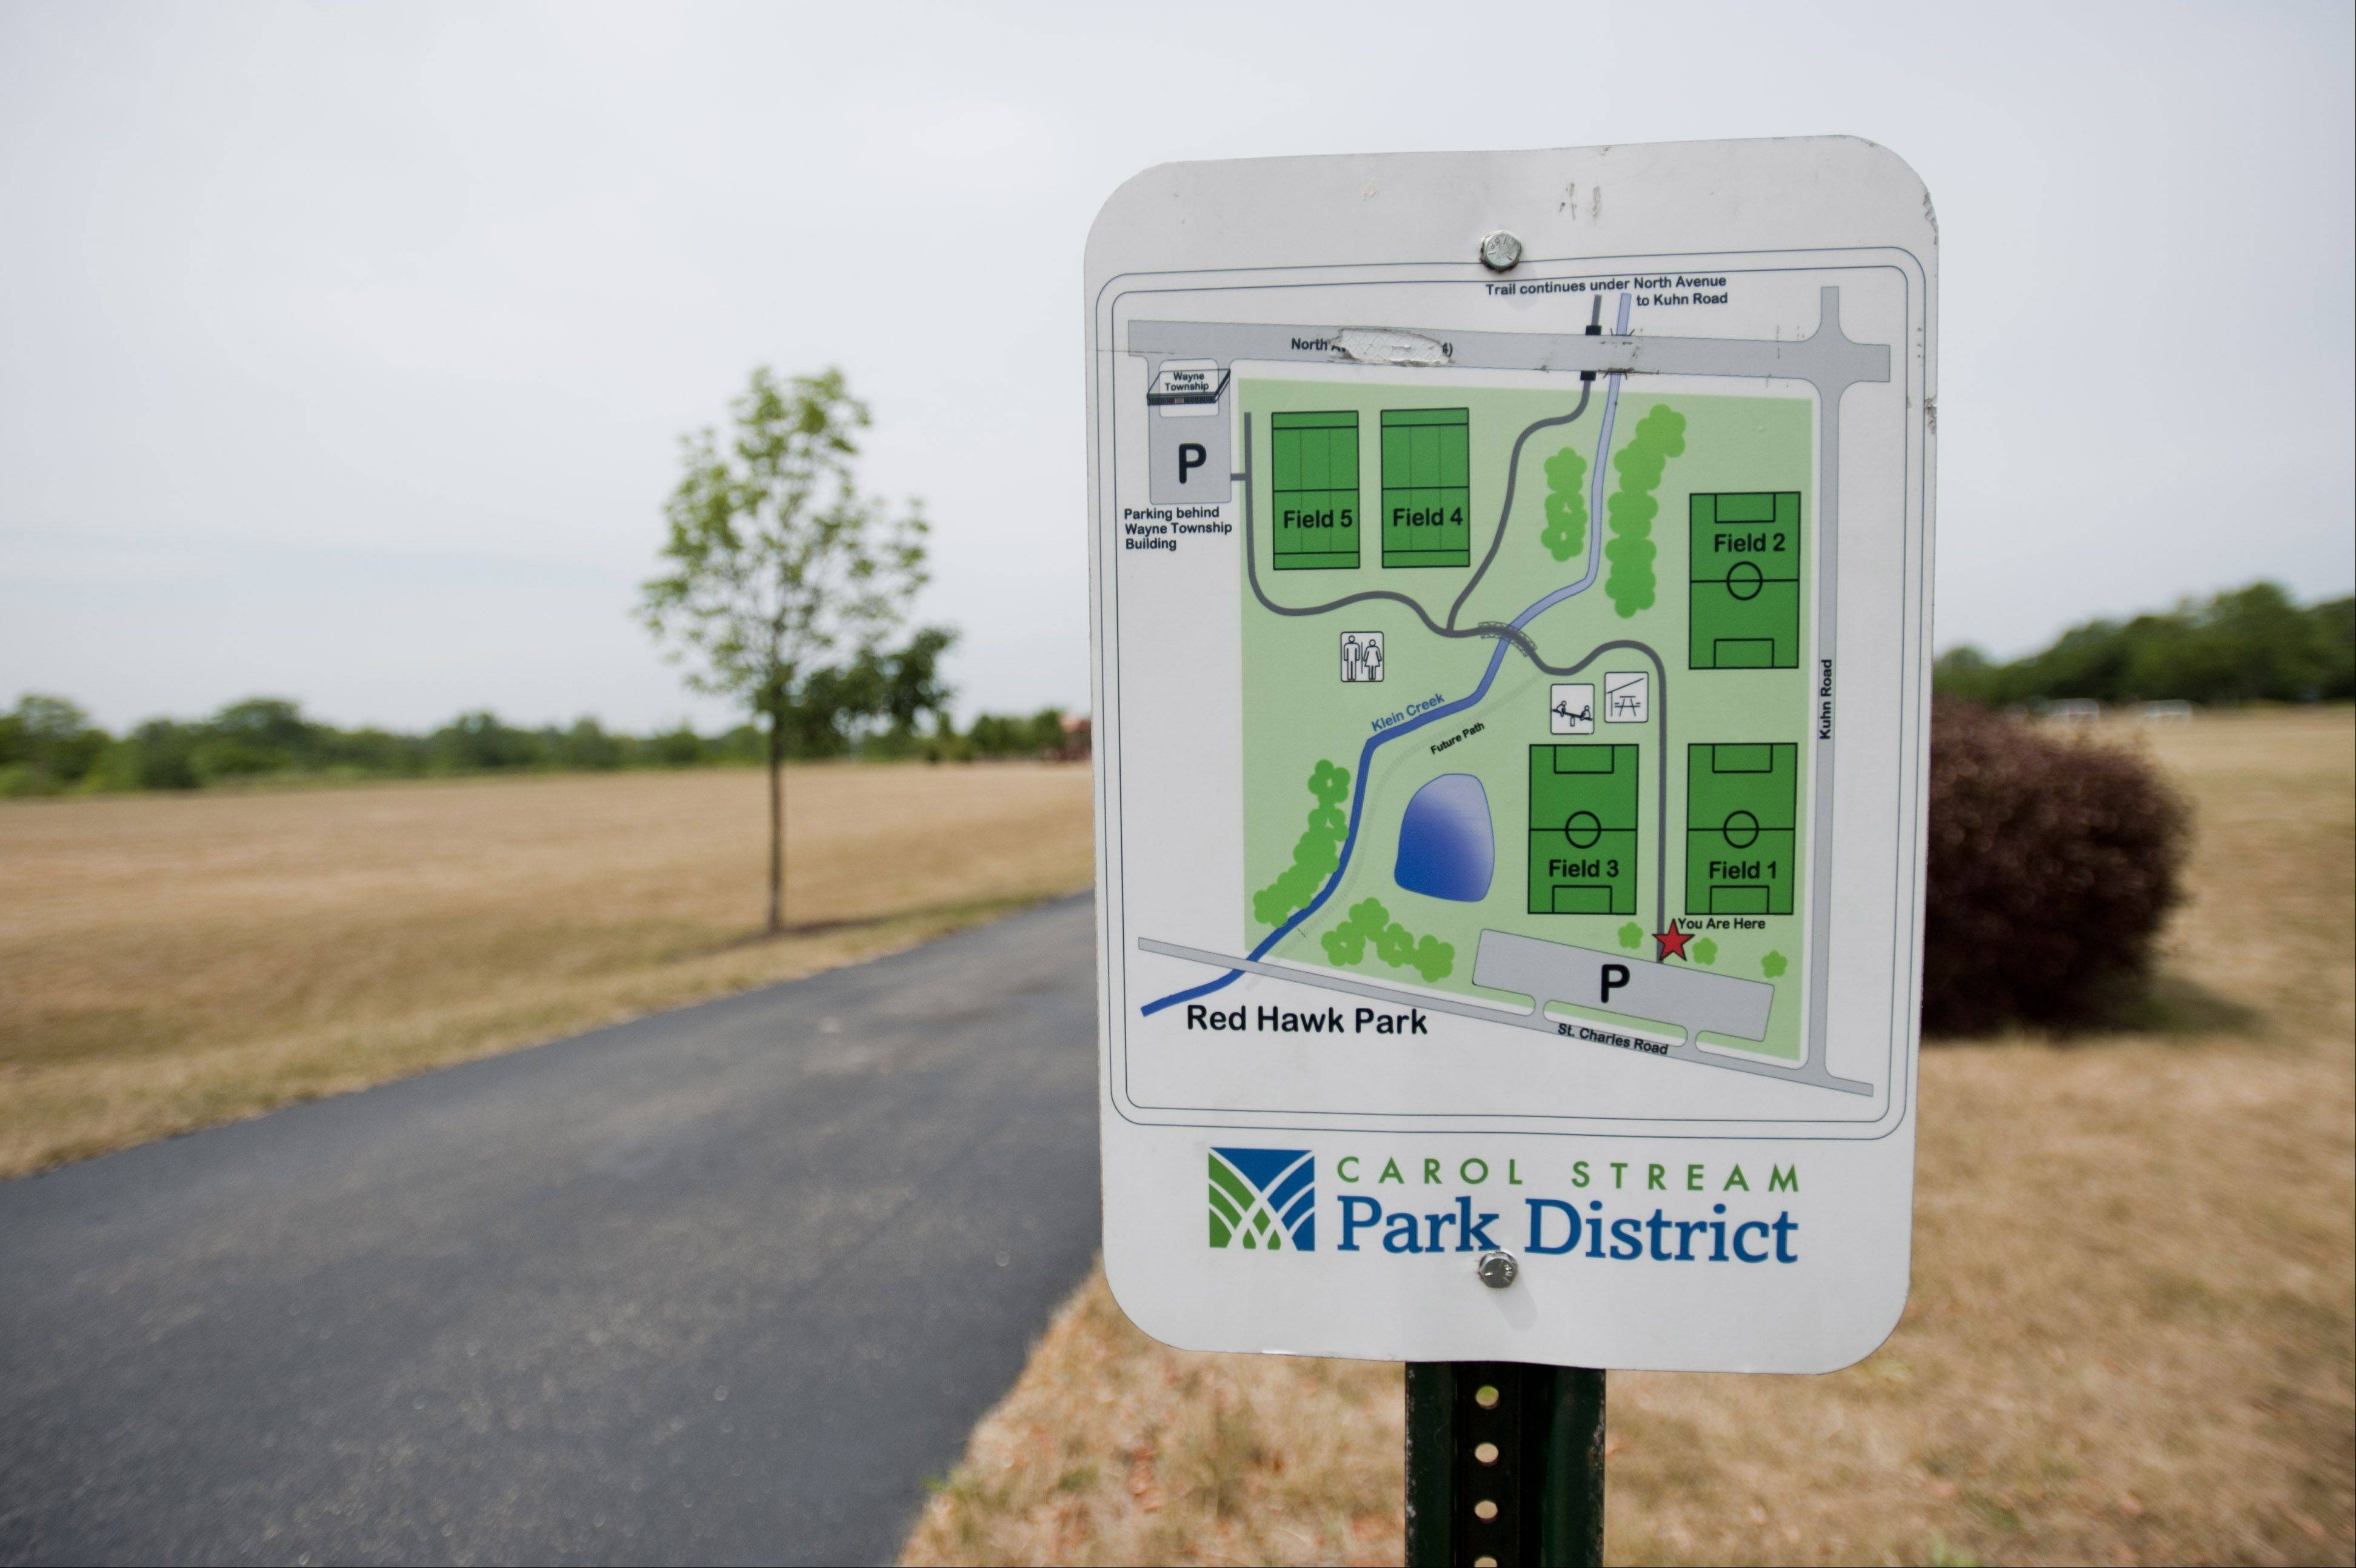 The Carol Stream Park District is building a bike path link that connects its existing trails with the Great Western Trail. The park trails currently end at St. Charles Road in Red Hawk Park.